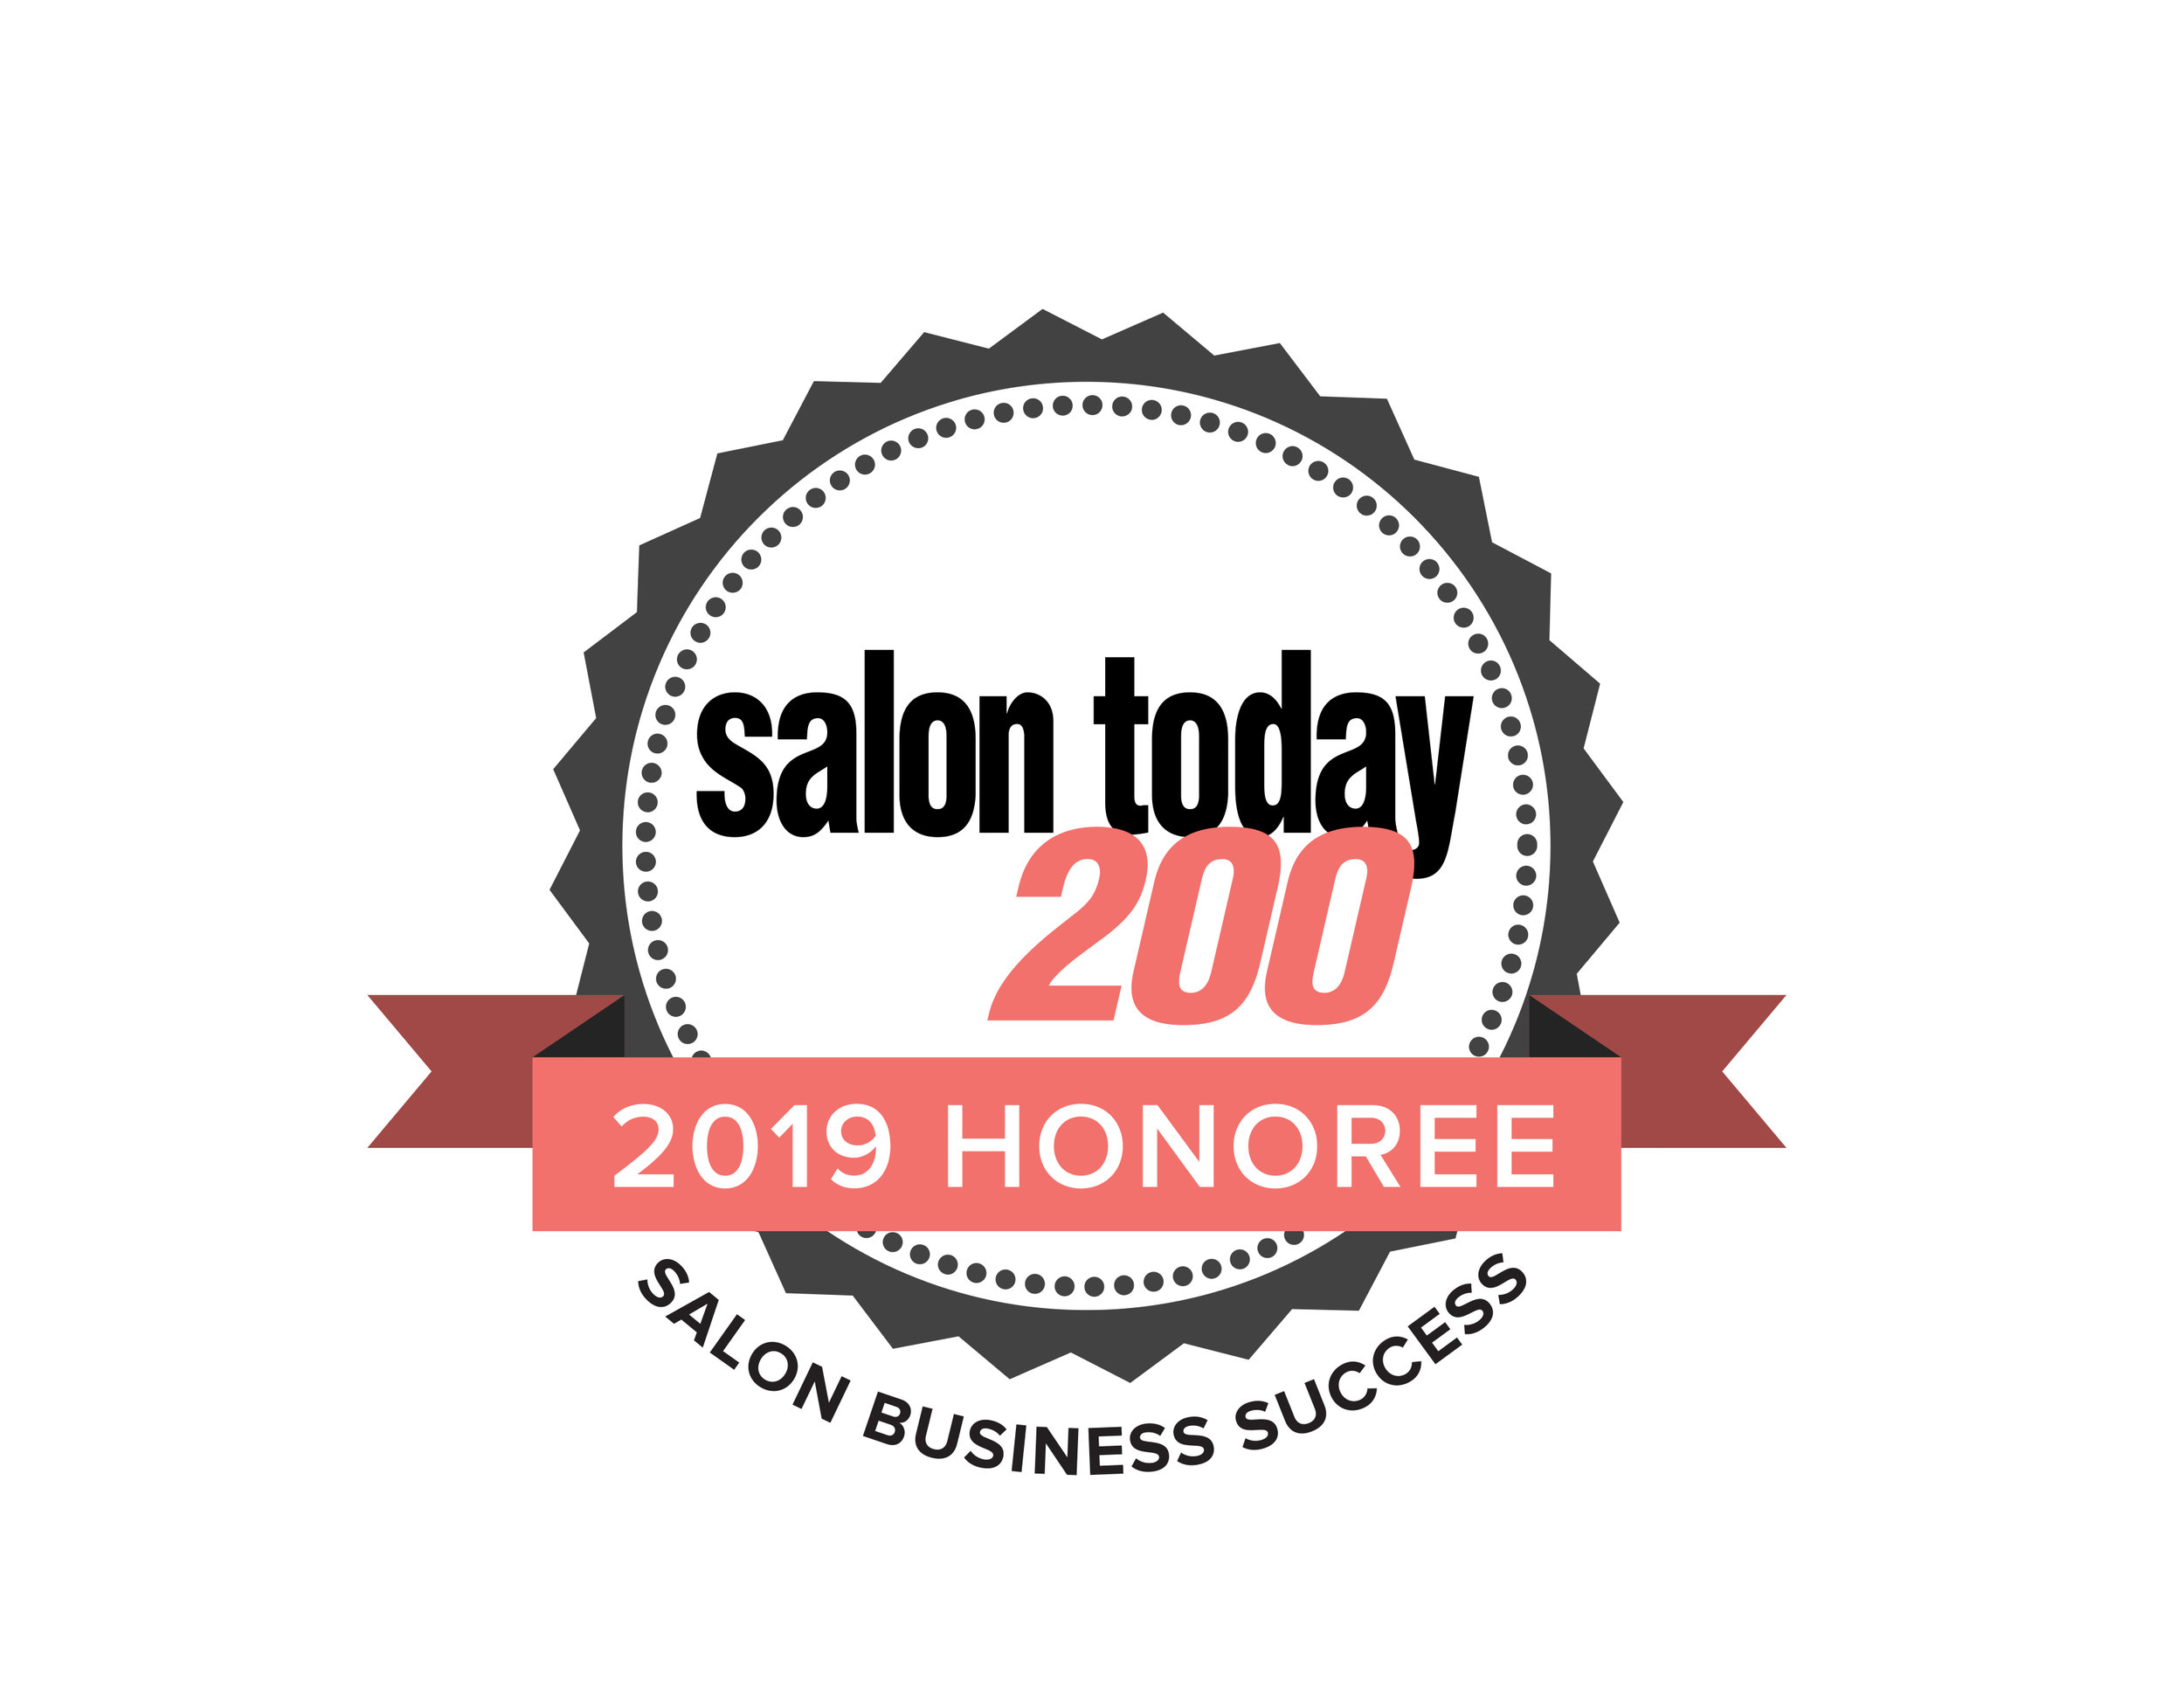 salon today 200 - We are delighted to announce that we've been named a TOP 200 SALON in North America in Salon Today Magazine!